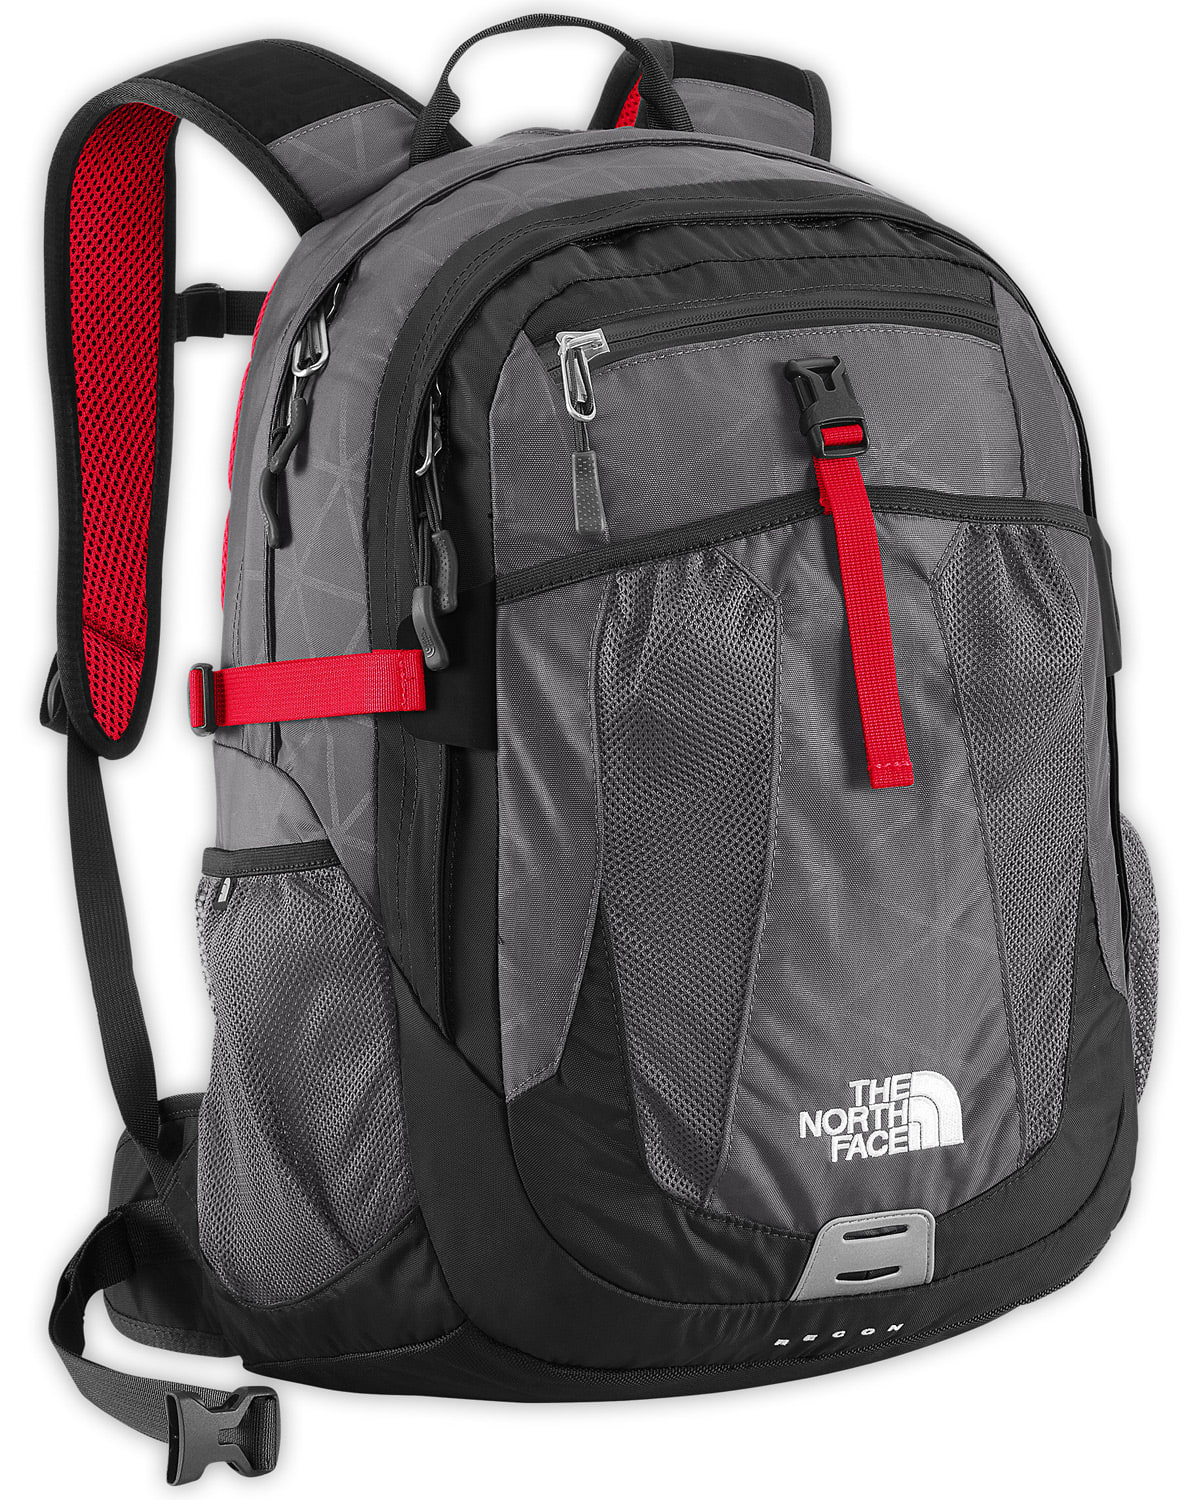 The North Face Recon Backpack Asphalt Grey Emboss 29L